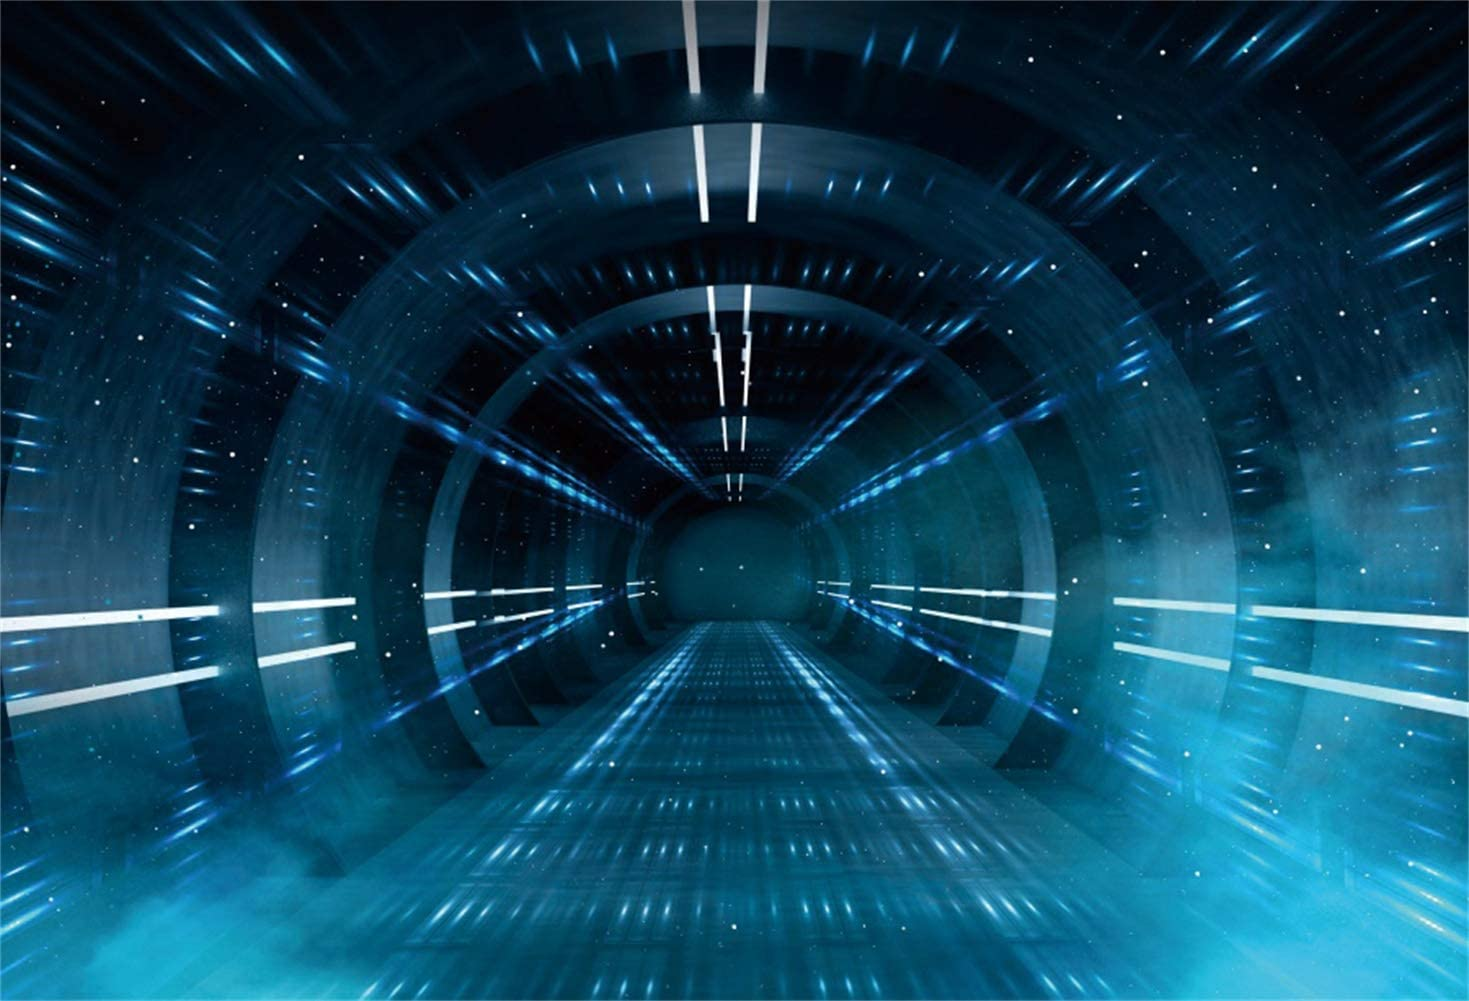 Yeele 10x8ft Abstract Tunnel Corridor Backdrops Neon Lights Rays Photography Background Sci-fi Event Party Decoration Kids Adult Artistic Portrait Photoshoot Props Photobooth Studio Props